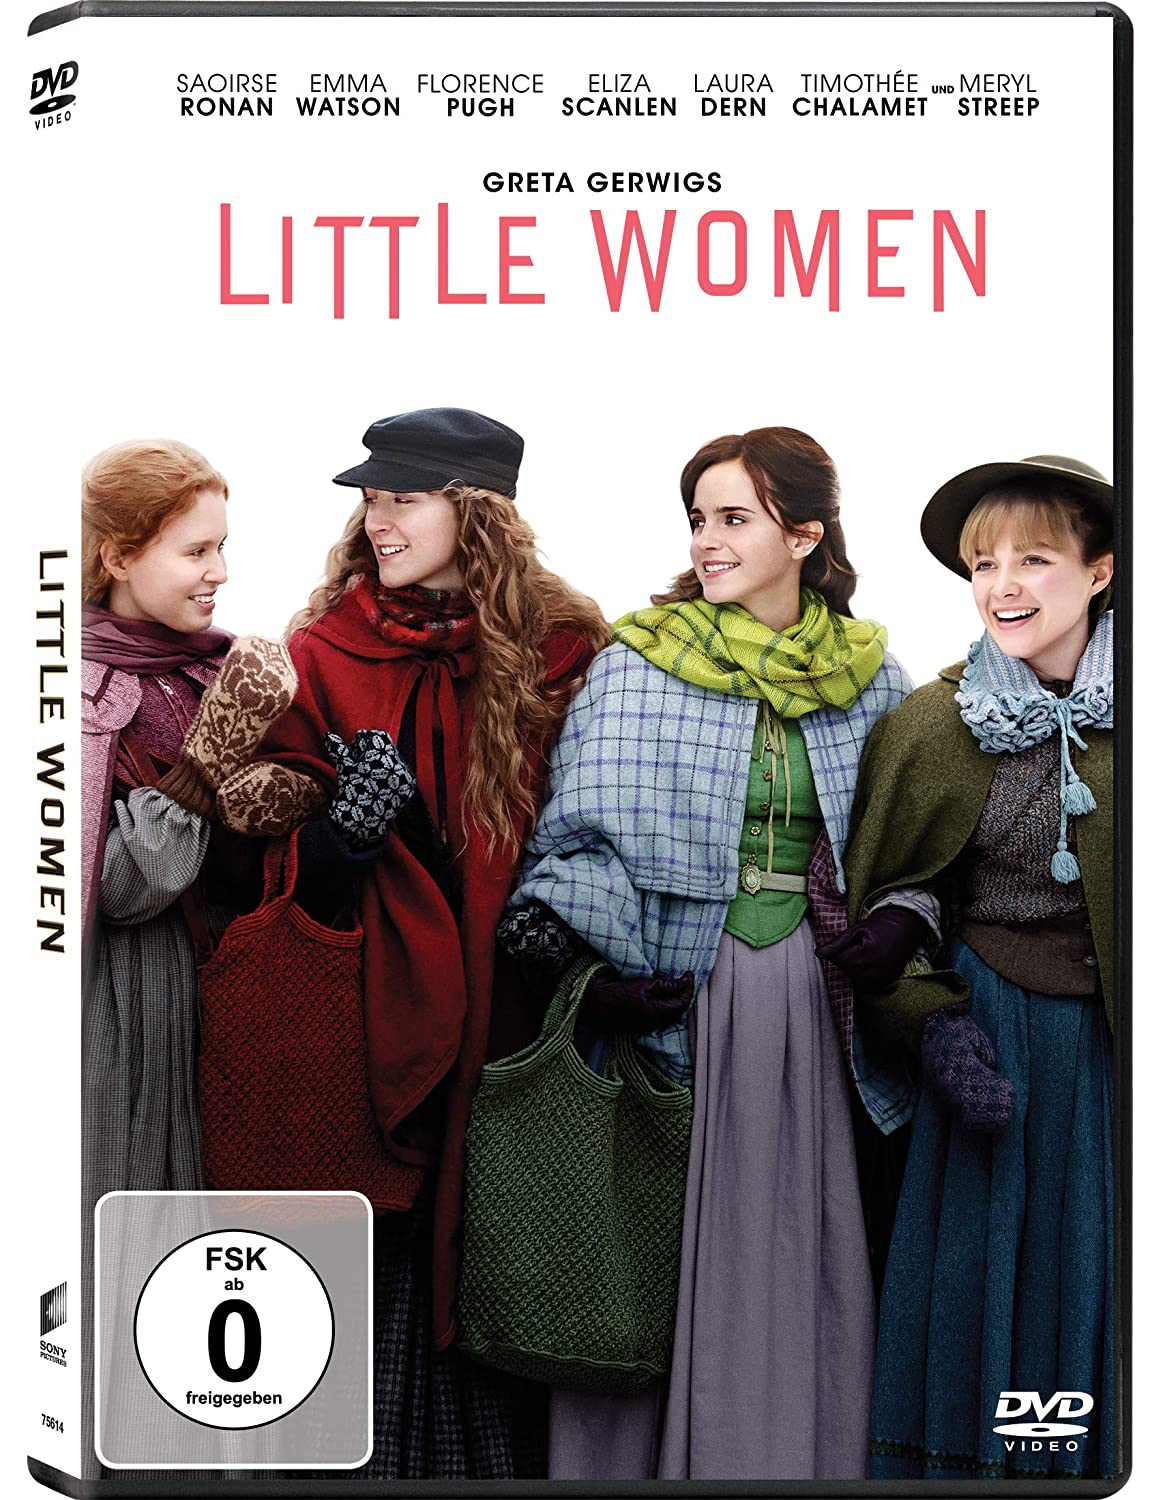 Cover: Little woman 1 DVD-Video (circa 129 min)